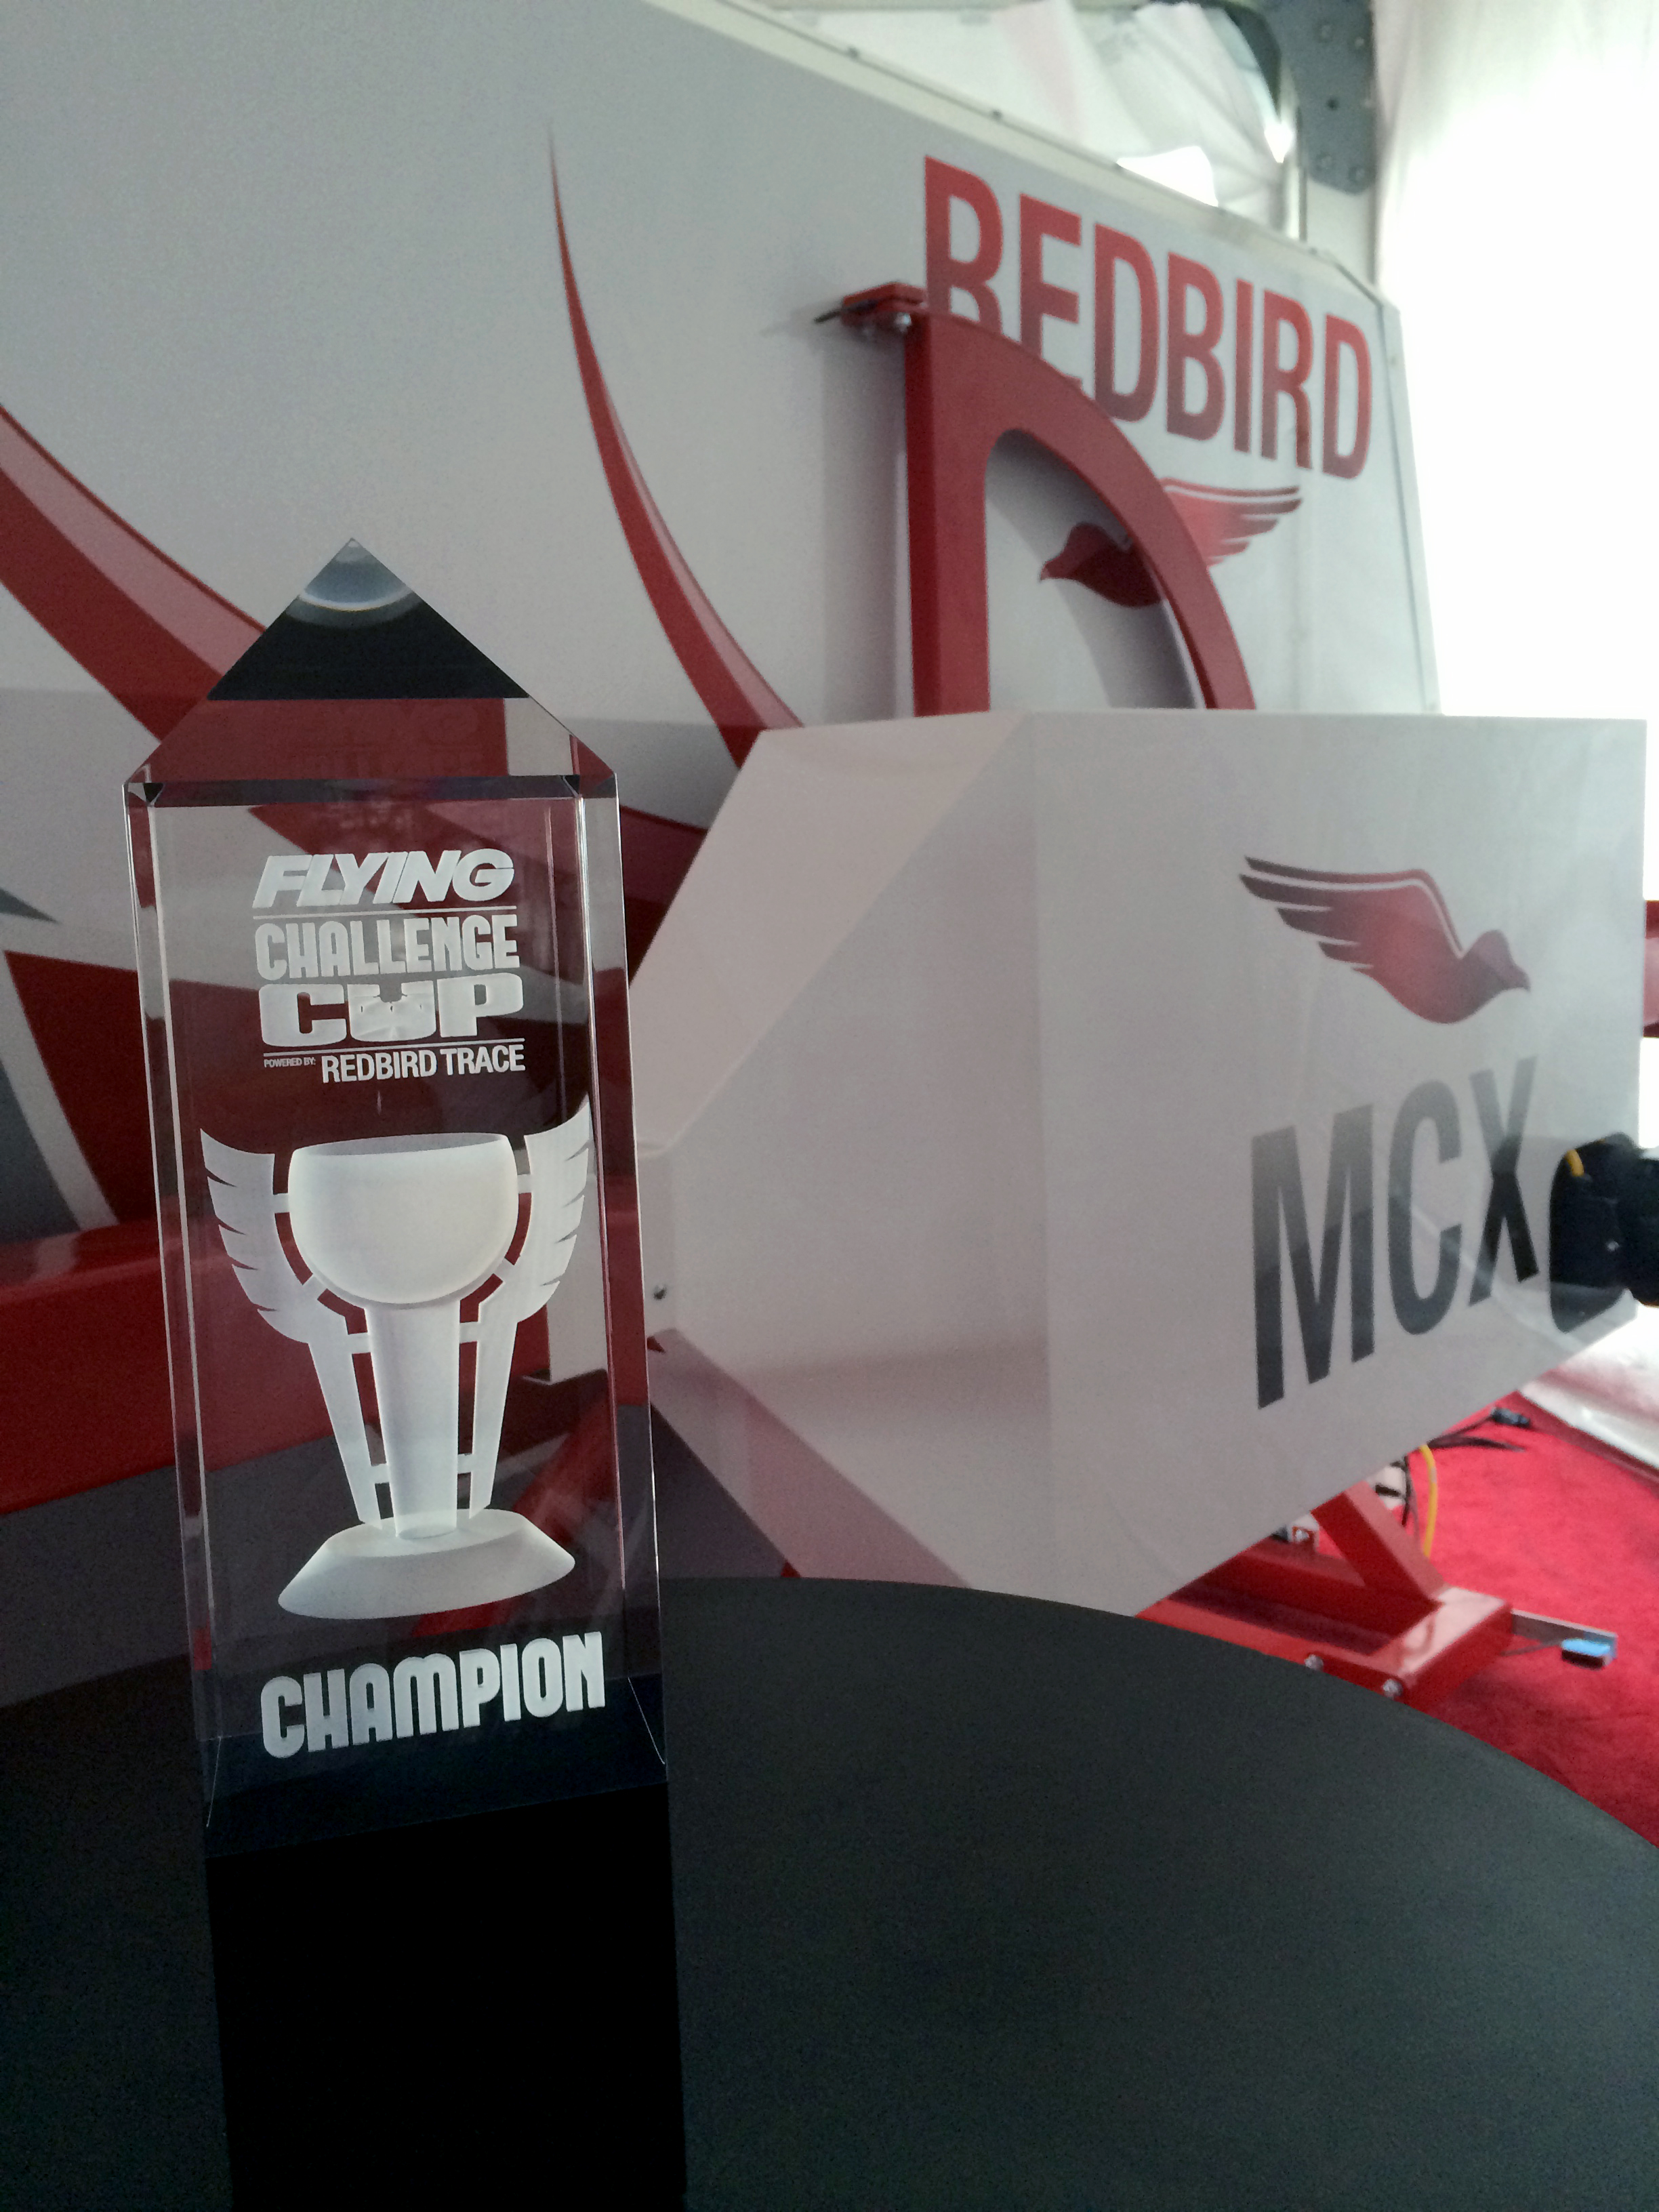 Flying Challenge Cup Trophy